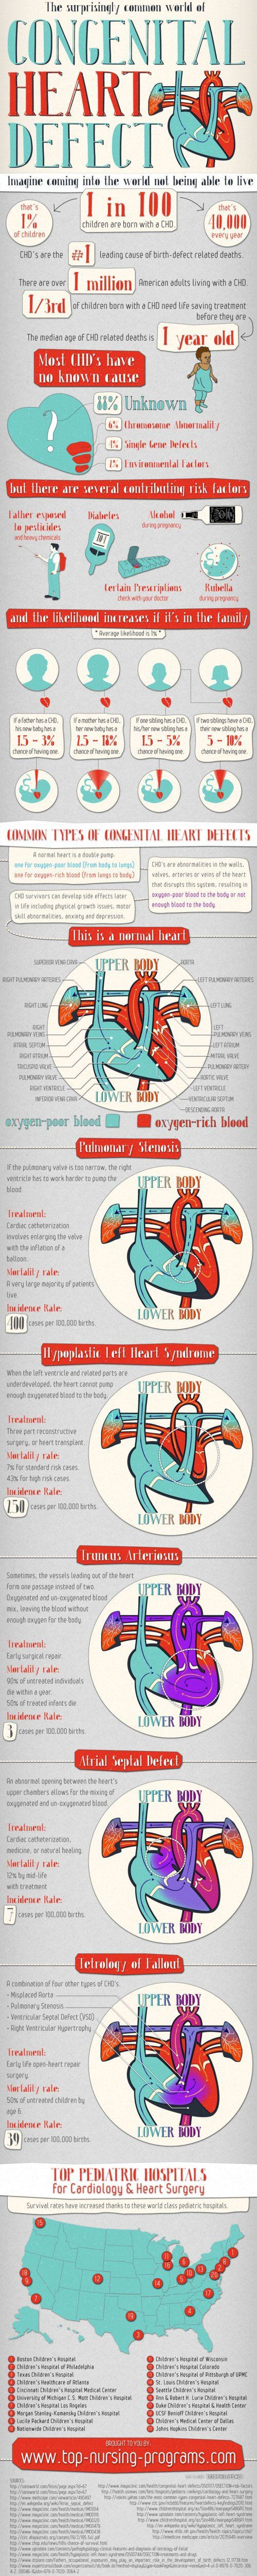 congenital-heart-defect infographic